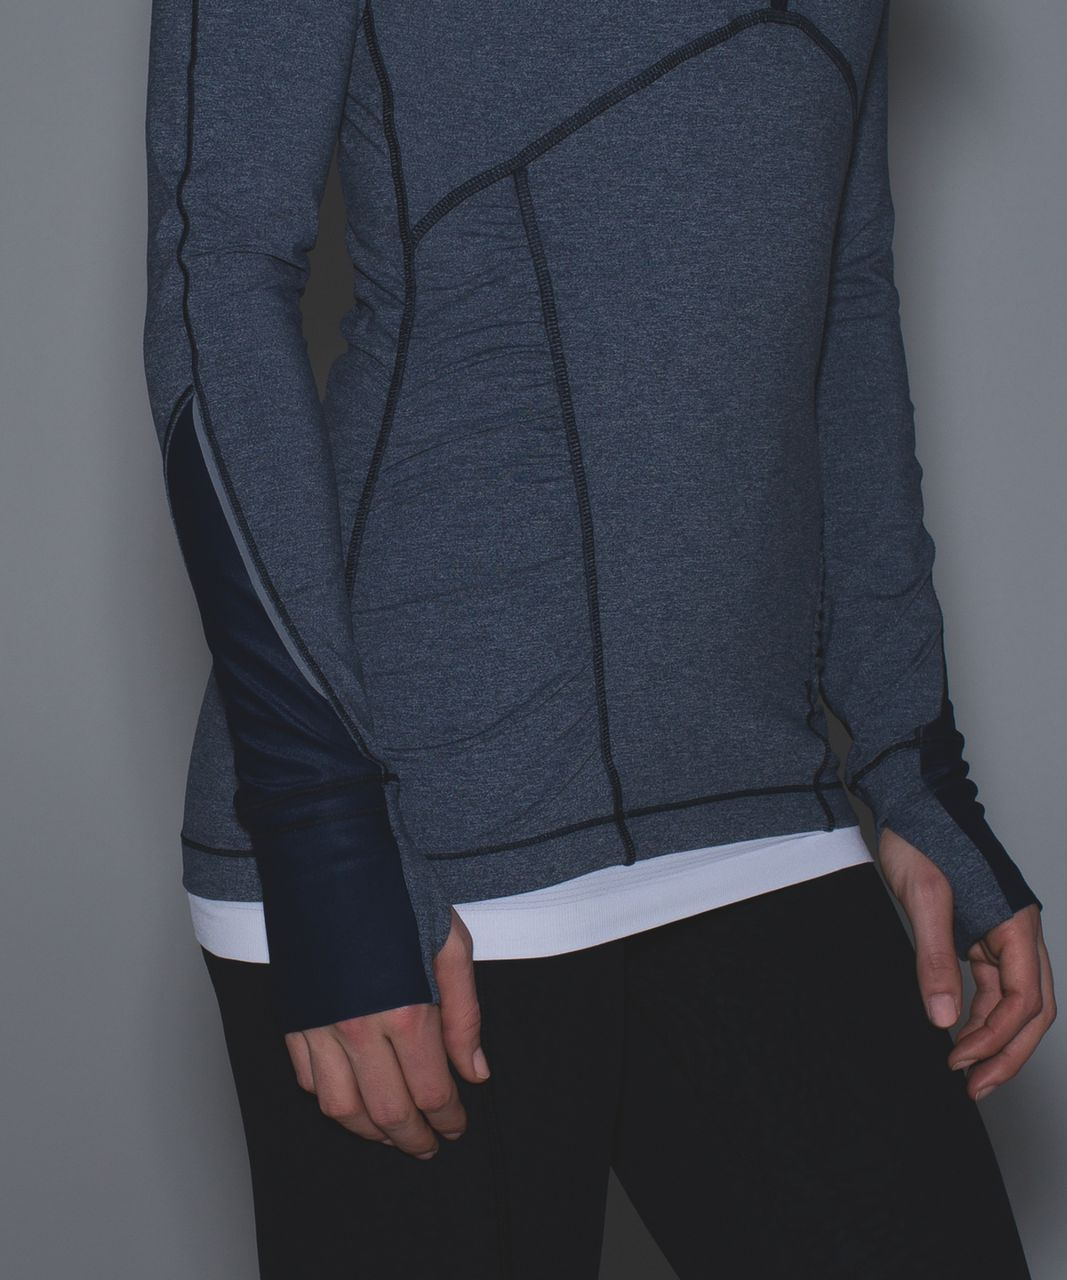 Lululemon Kriss Cross 1/2 Zip - Heathered Inkwell